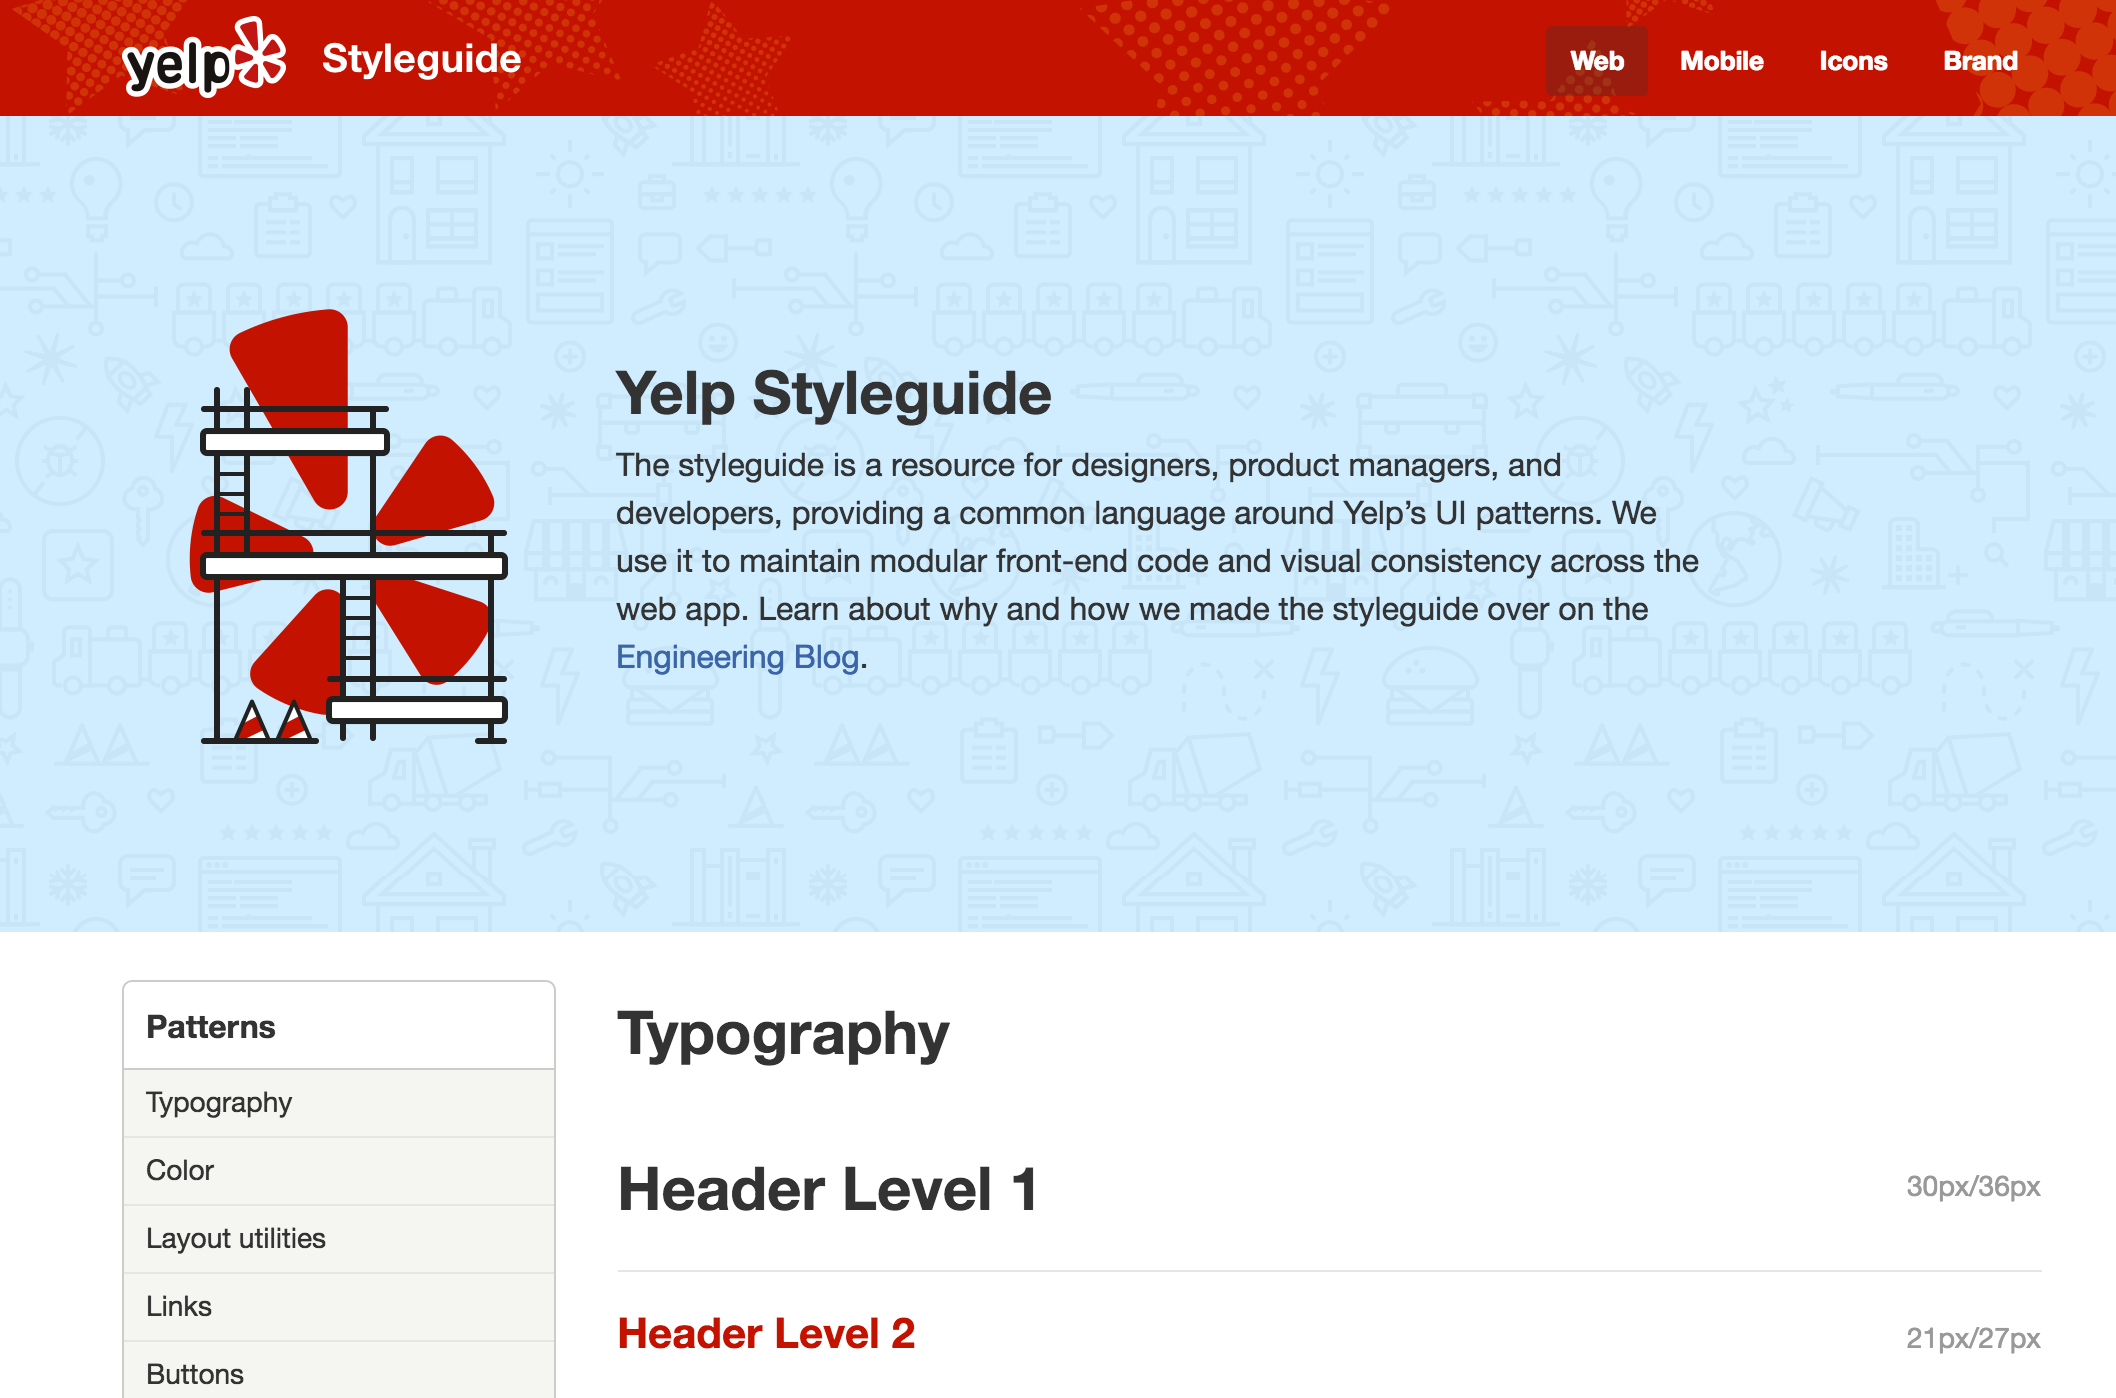 Yelp's style guide homepage sports a handsome design and important intro text explaining the purpose and audience for the guide.